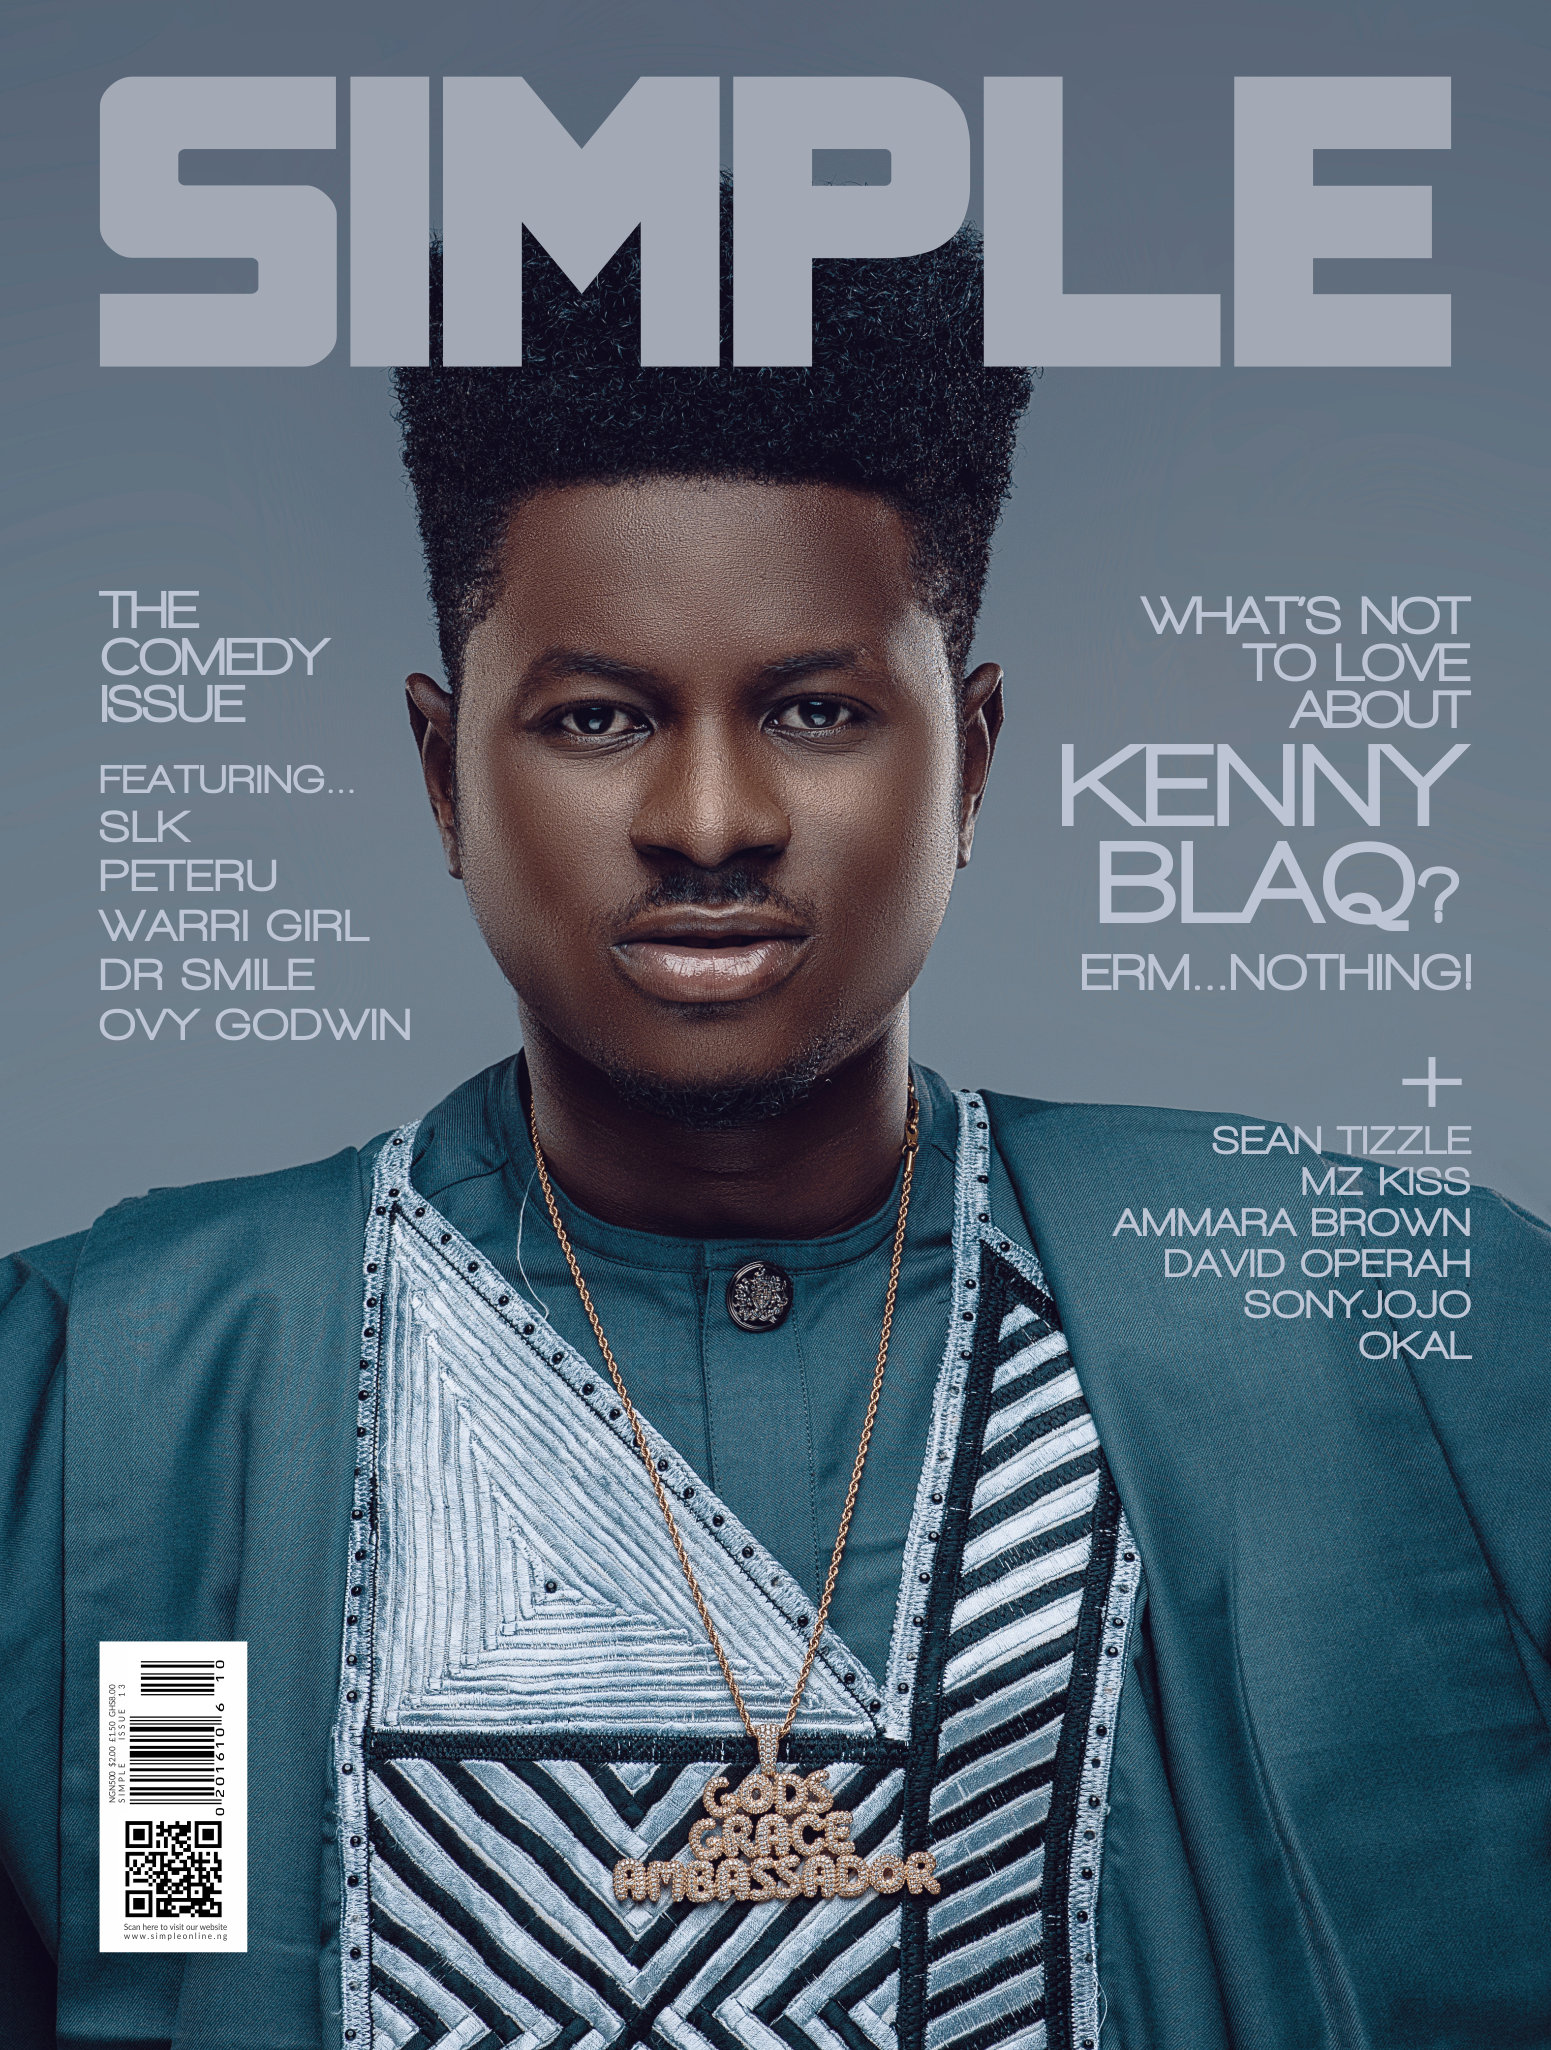 KENNYBLAQ COVERS THE FRONT PAGE OF 'SIMPLE MAGAZINE'S LATEST ISSUE